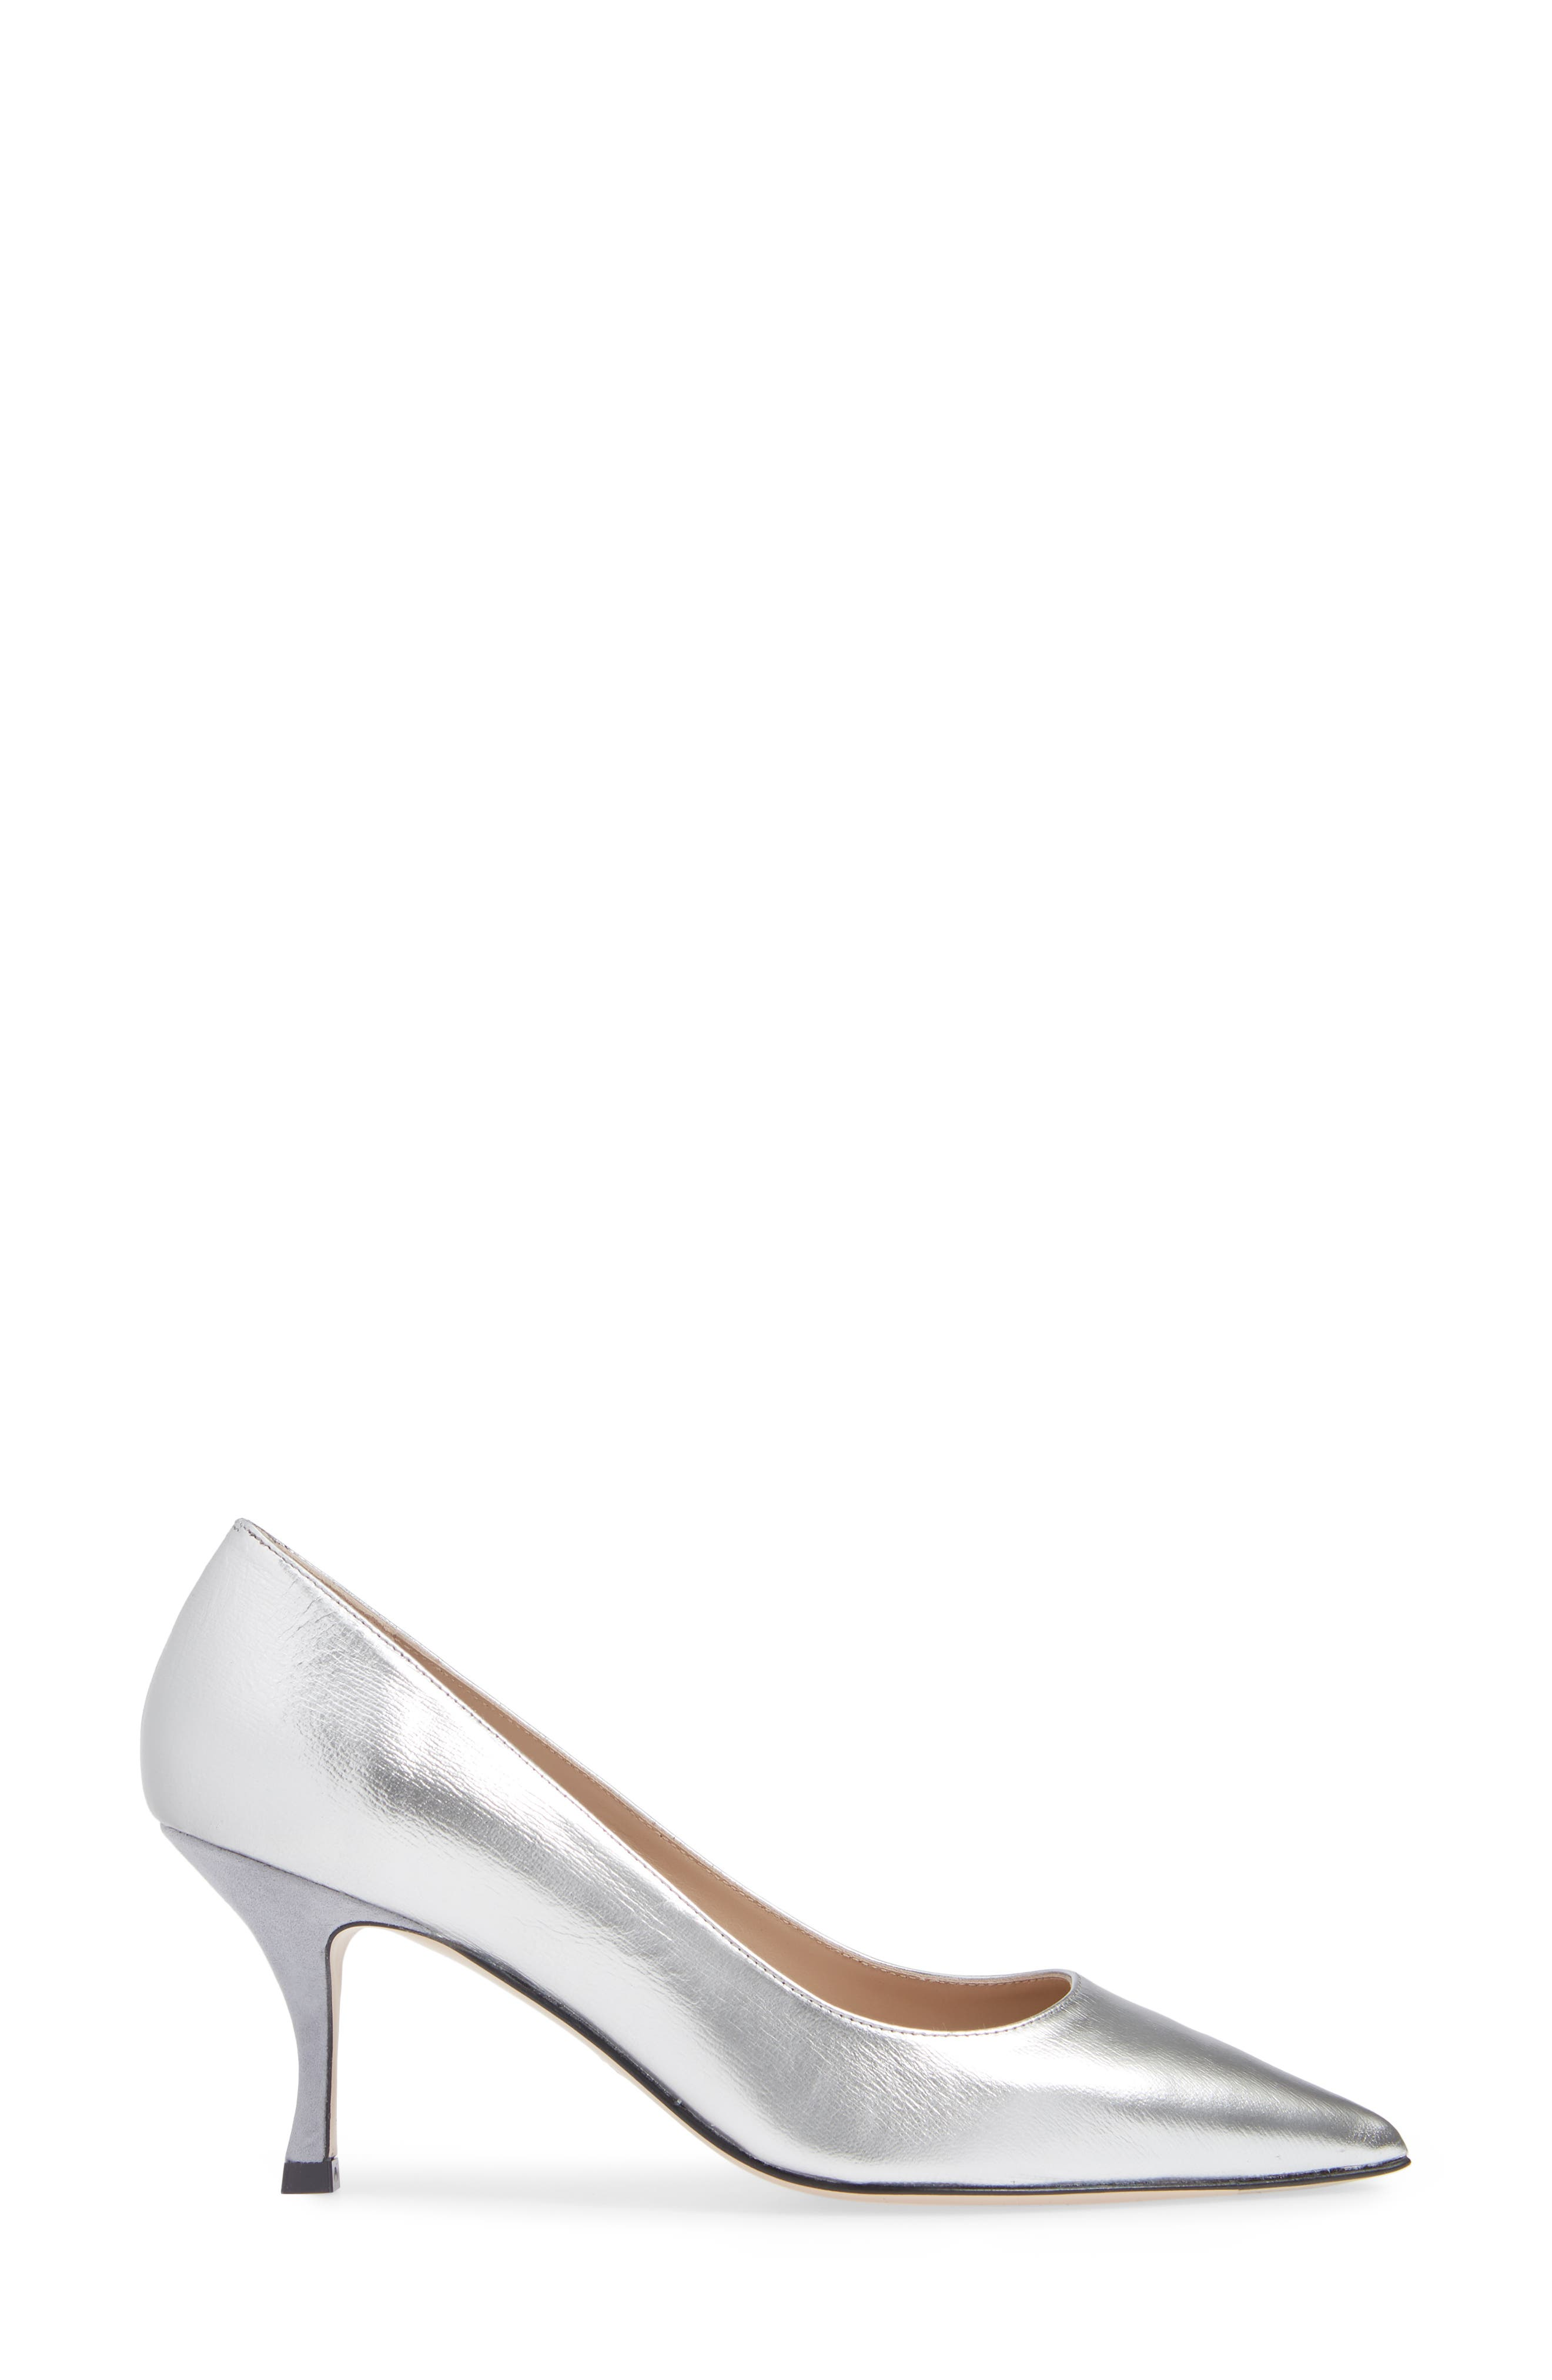 Tippi 70 Pointy Toe Pump,                             Alternate thumbnail 3, color,                             SILVER VENICE